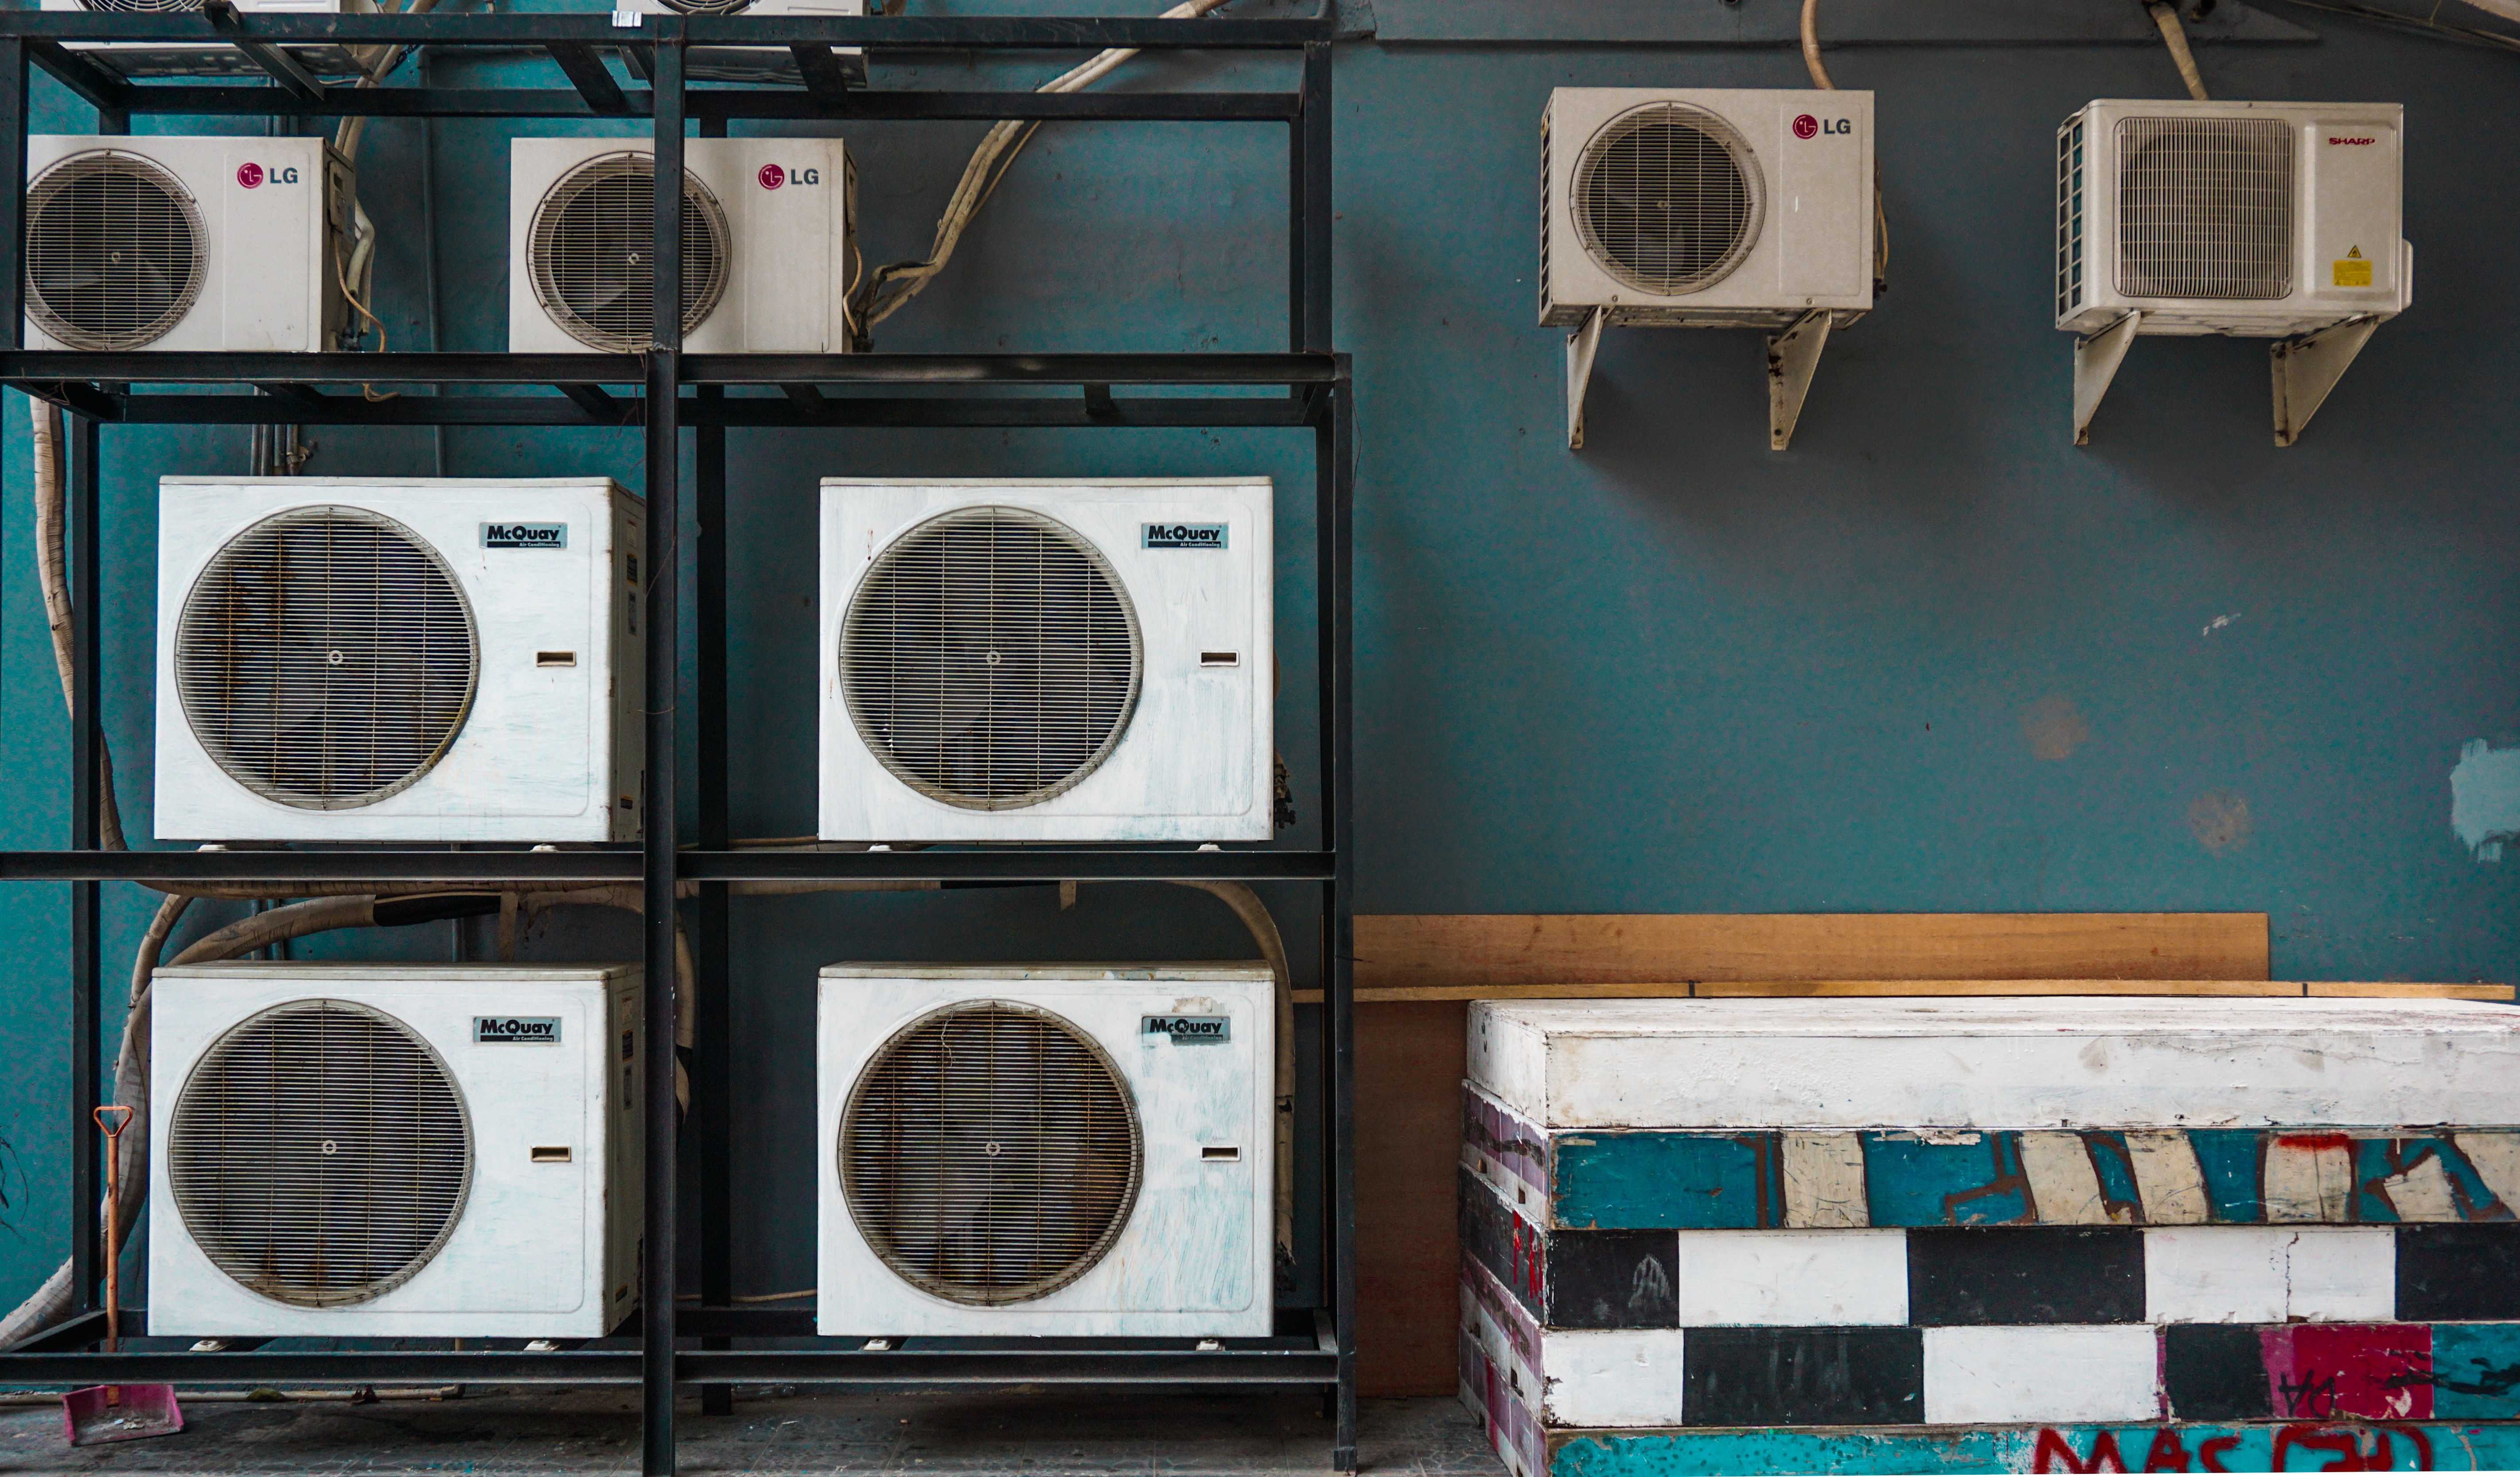 air conditioning units sitting on shelves